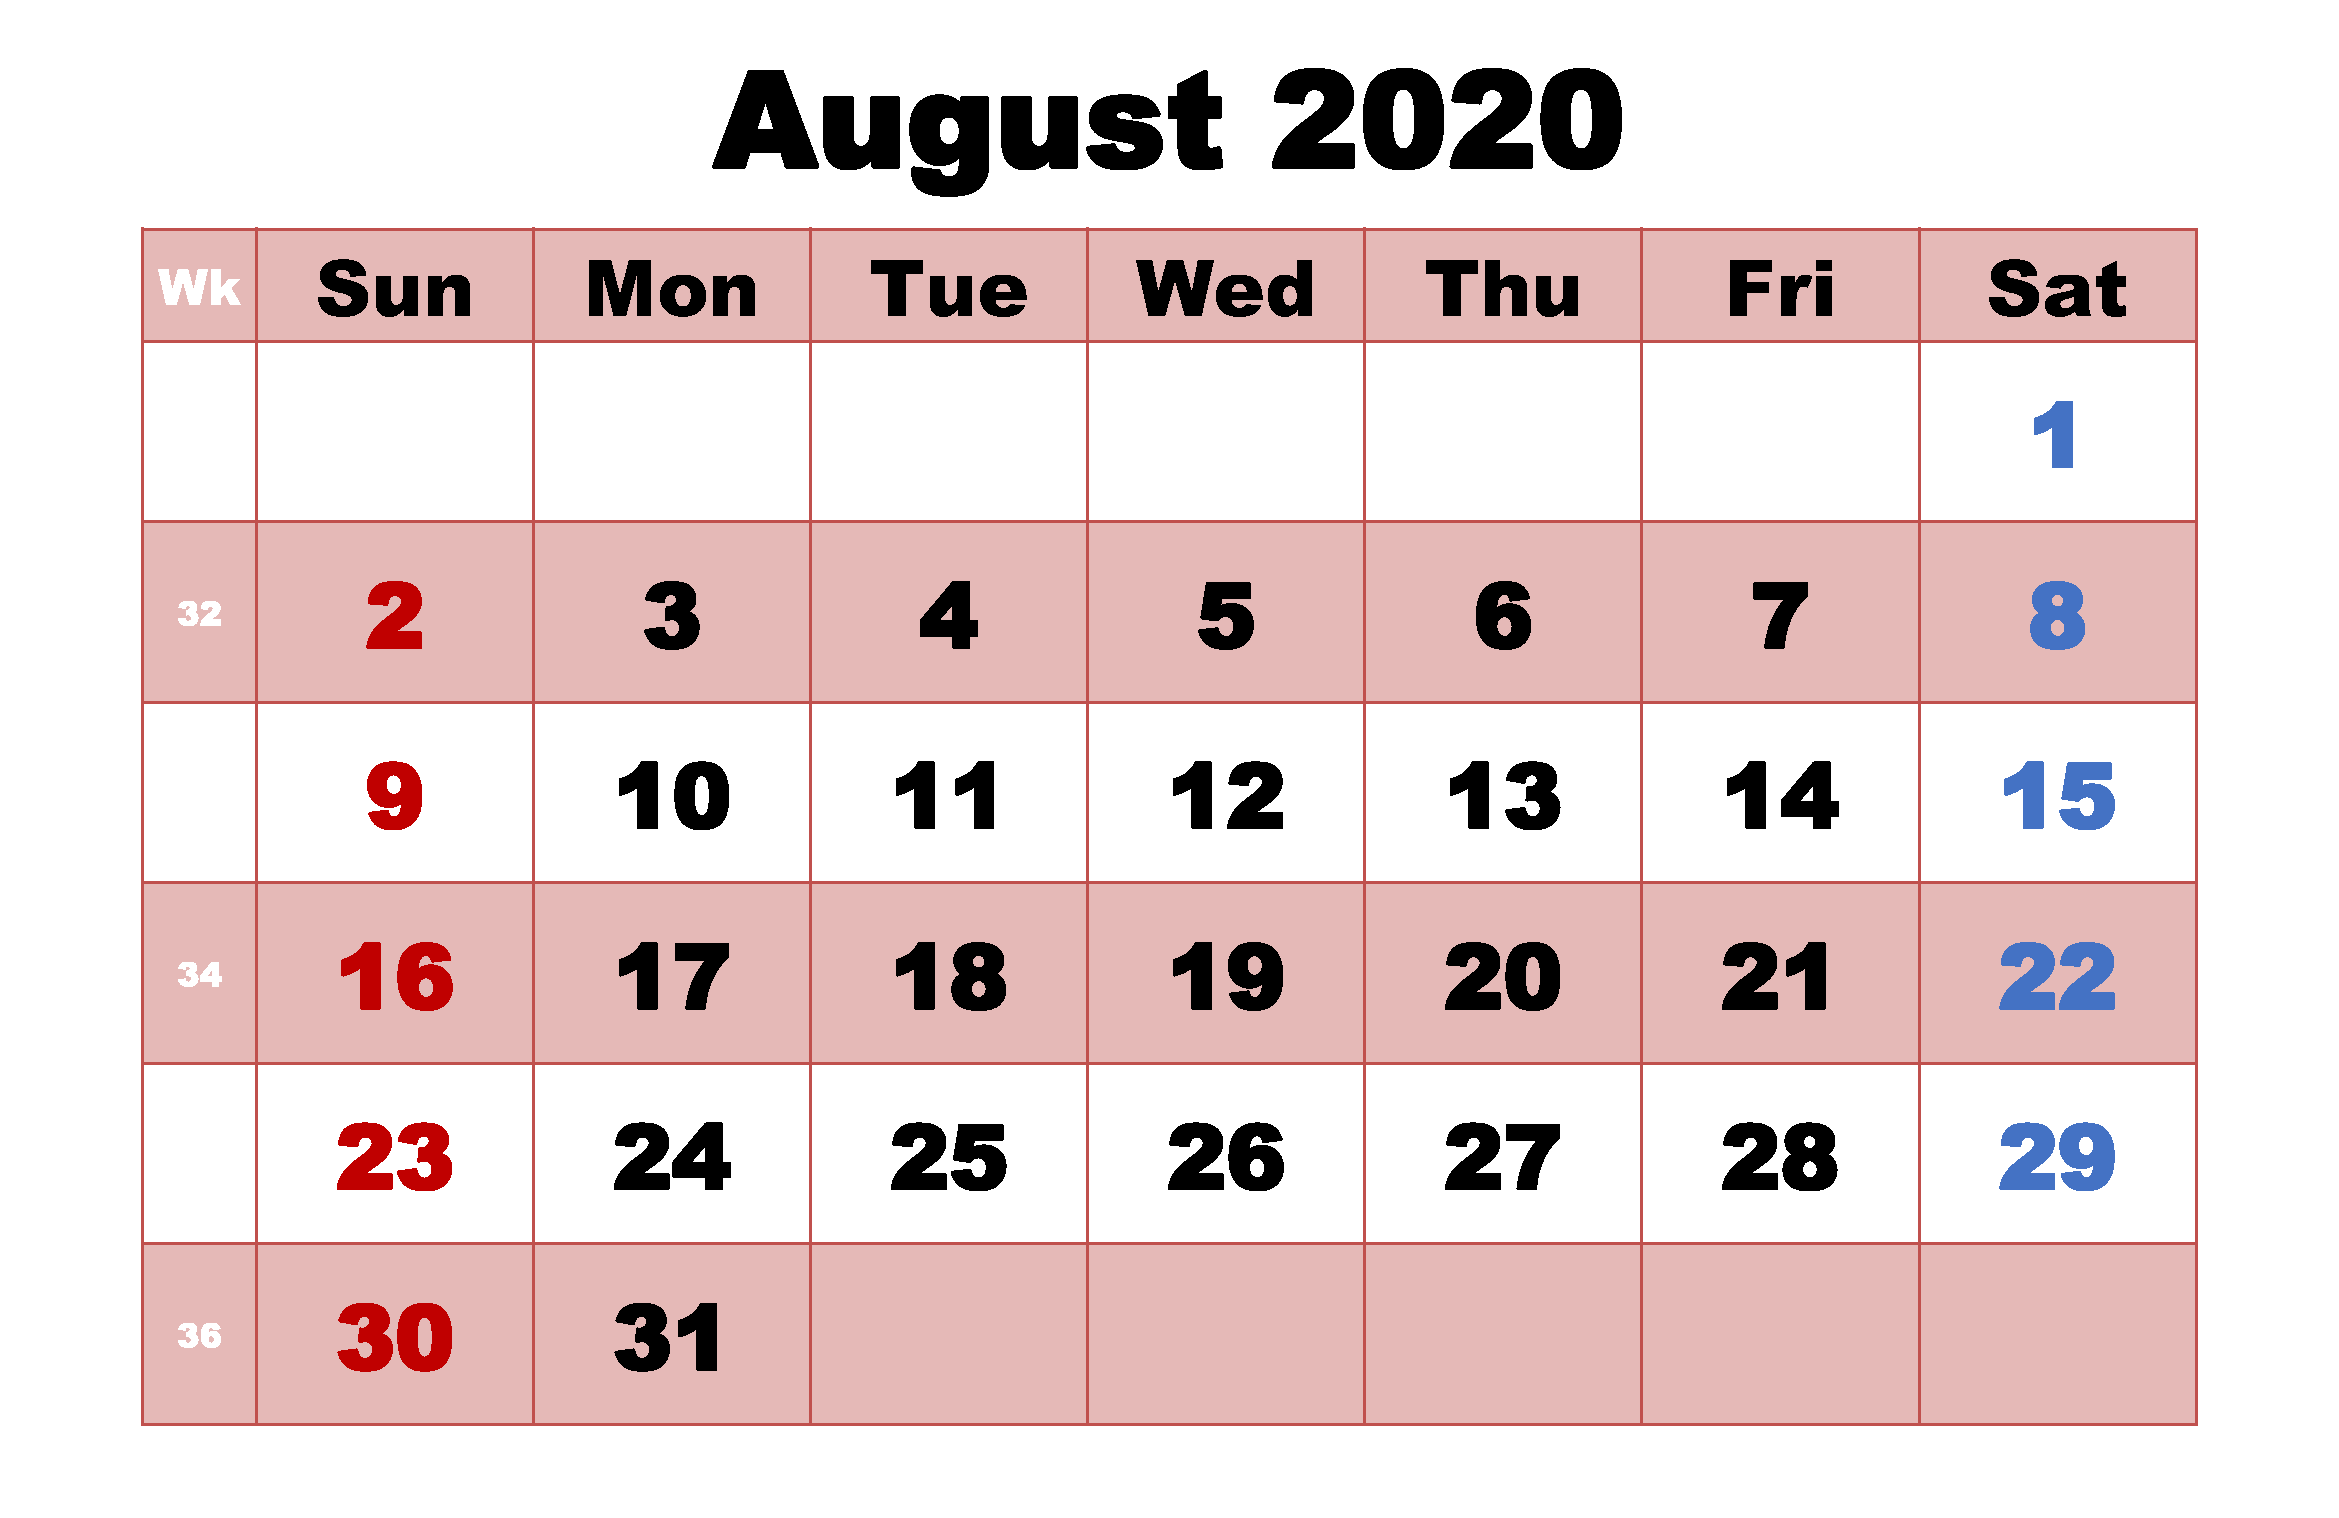 August 2020 Monthly Calendar Template